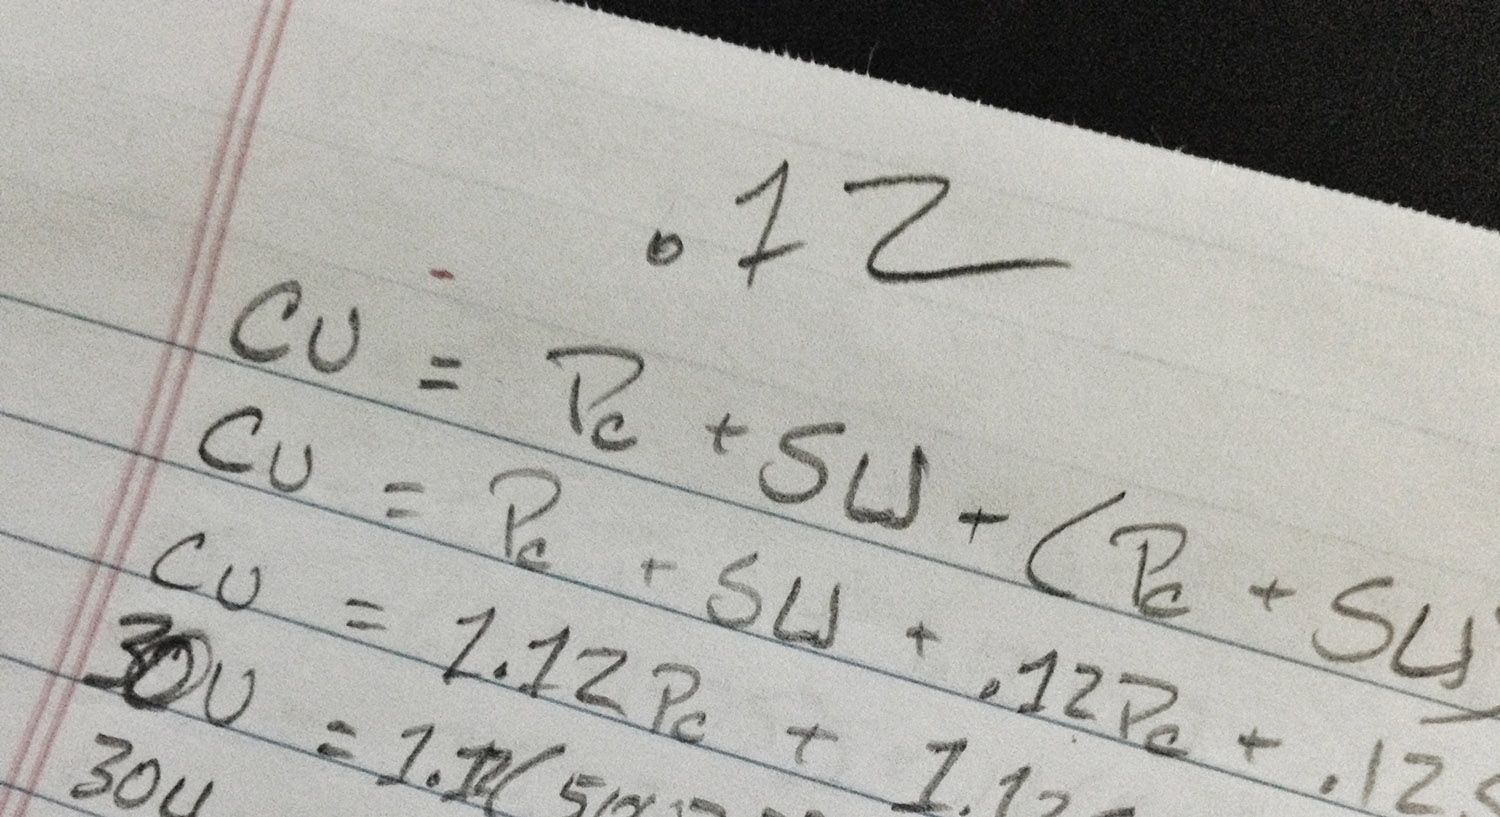 Glimpse of the mathematical formulae we came up with for determining kickstarter minumum goals.